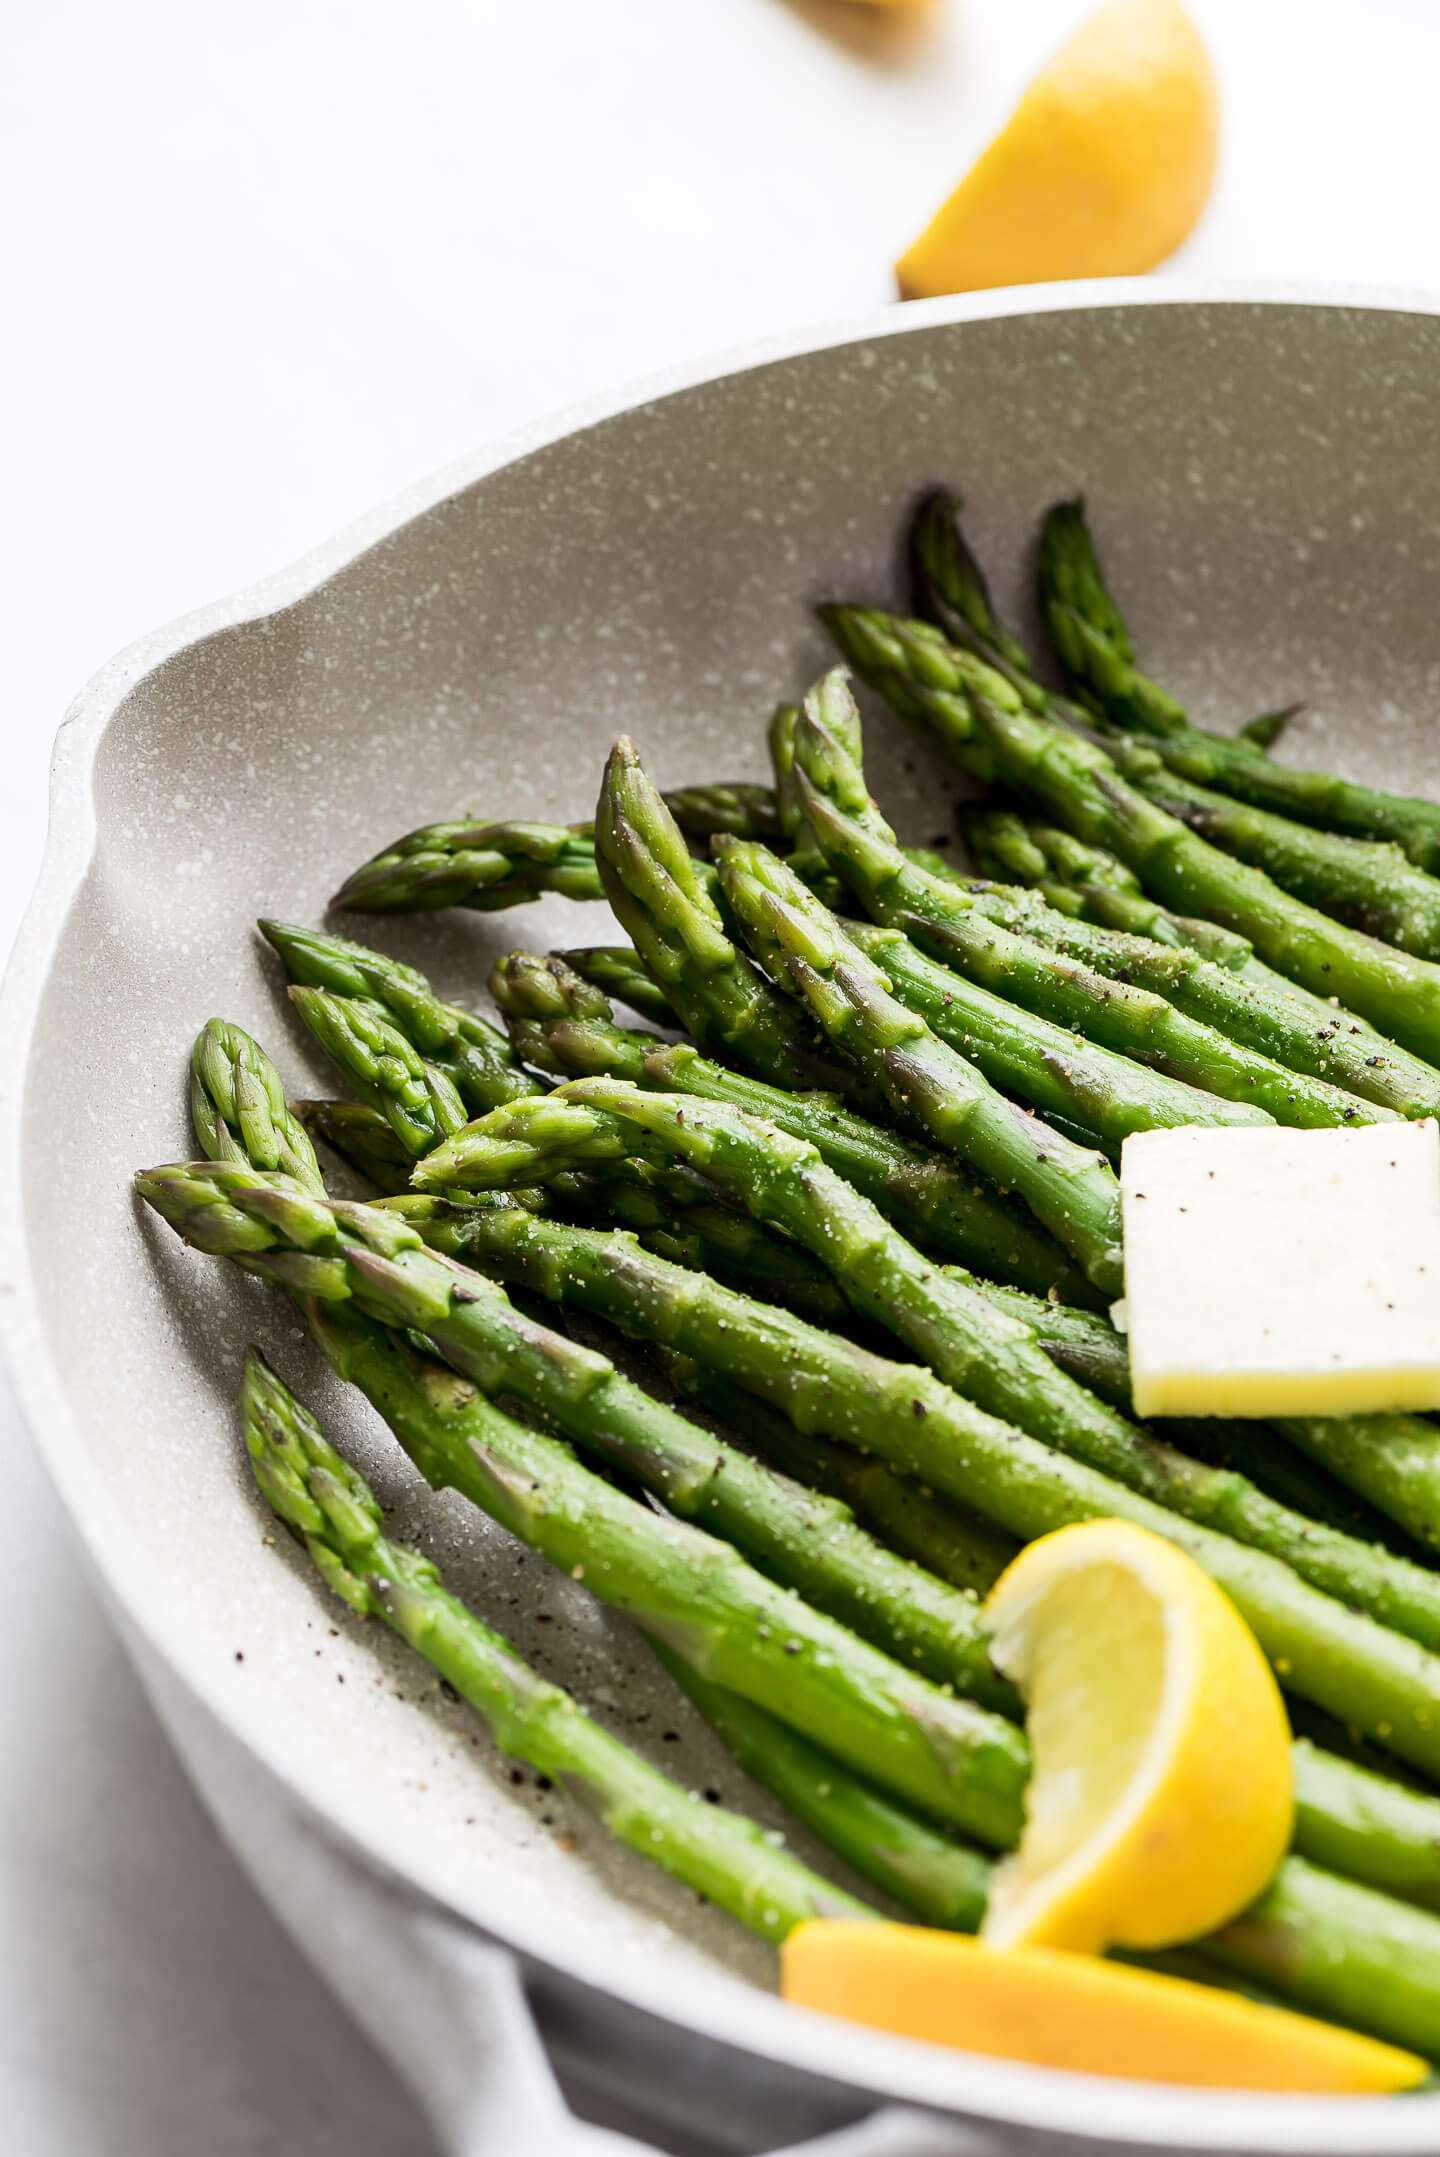 A close up shot of steamed asparagus spears in a pan seasoned with salt and pepper, a pat of butter, and lemon wedges.